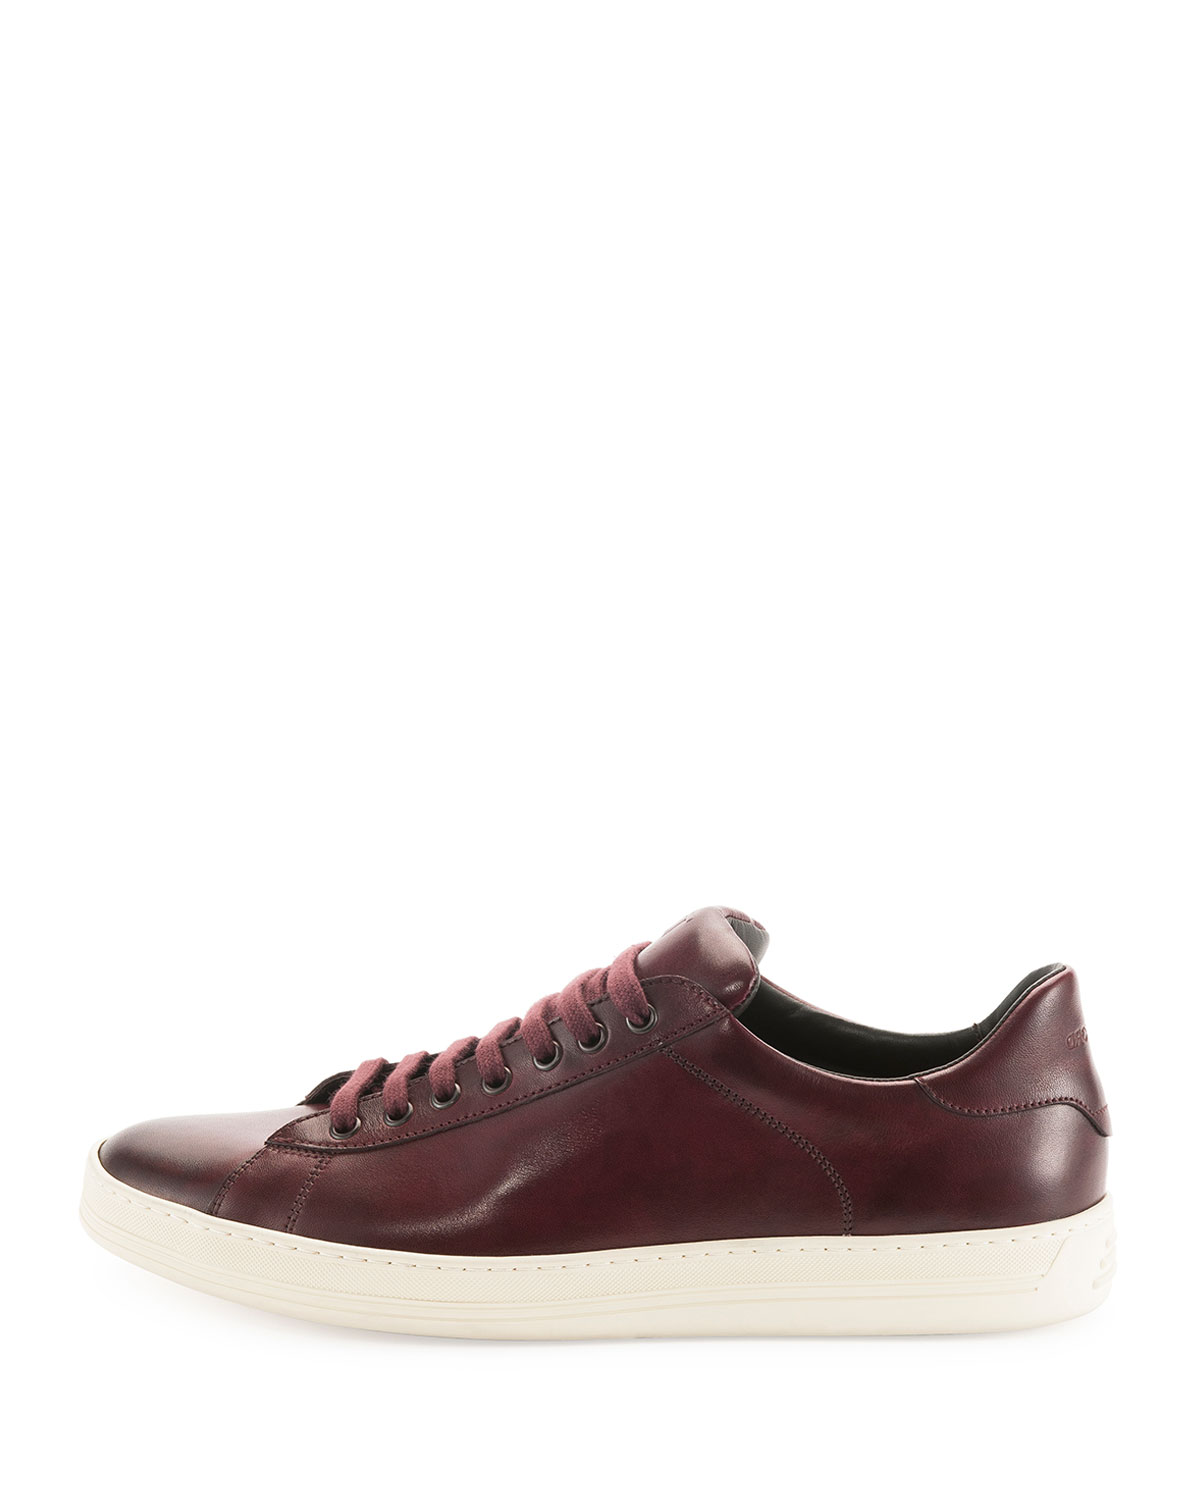 Tom FordLow top sneakers ET9ezNC911